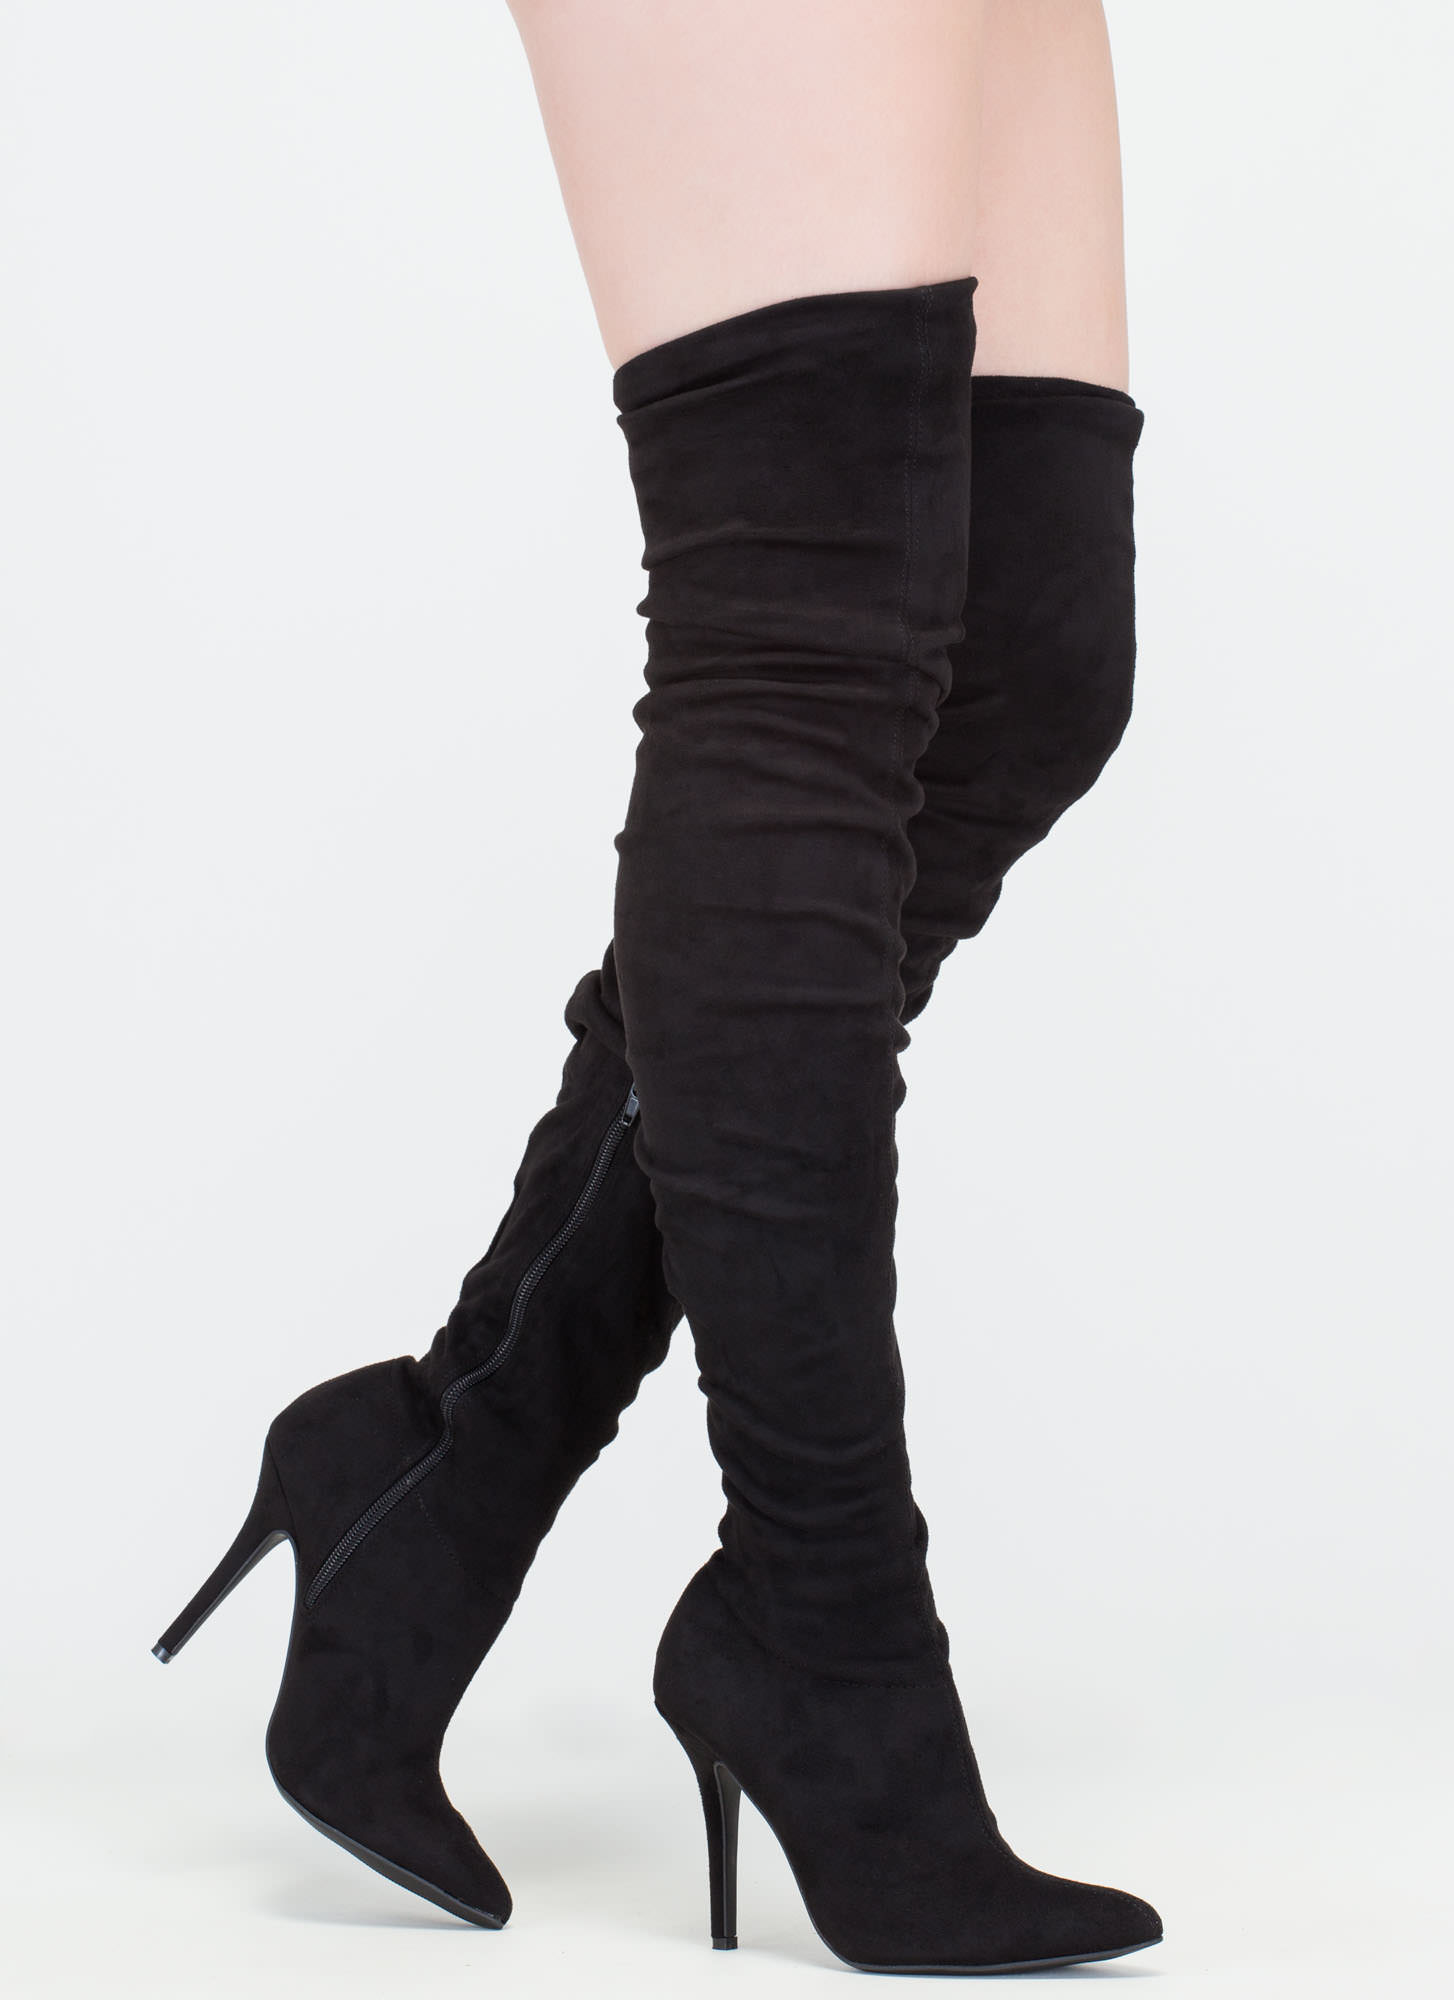 Stylish Slouch' Pointy Thigh High Slouch Boots, Stiletto